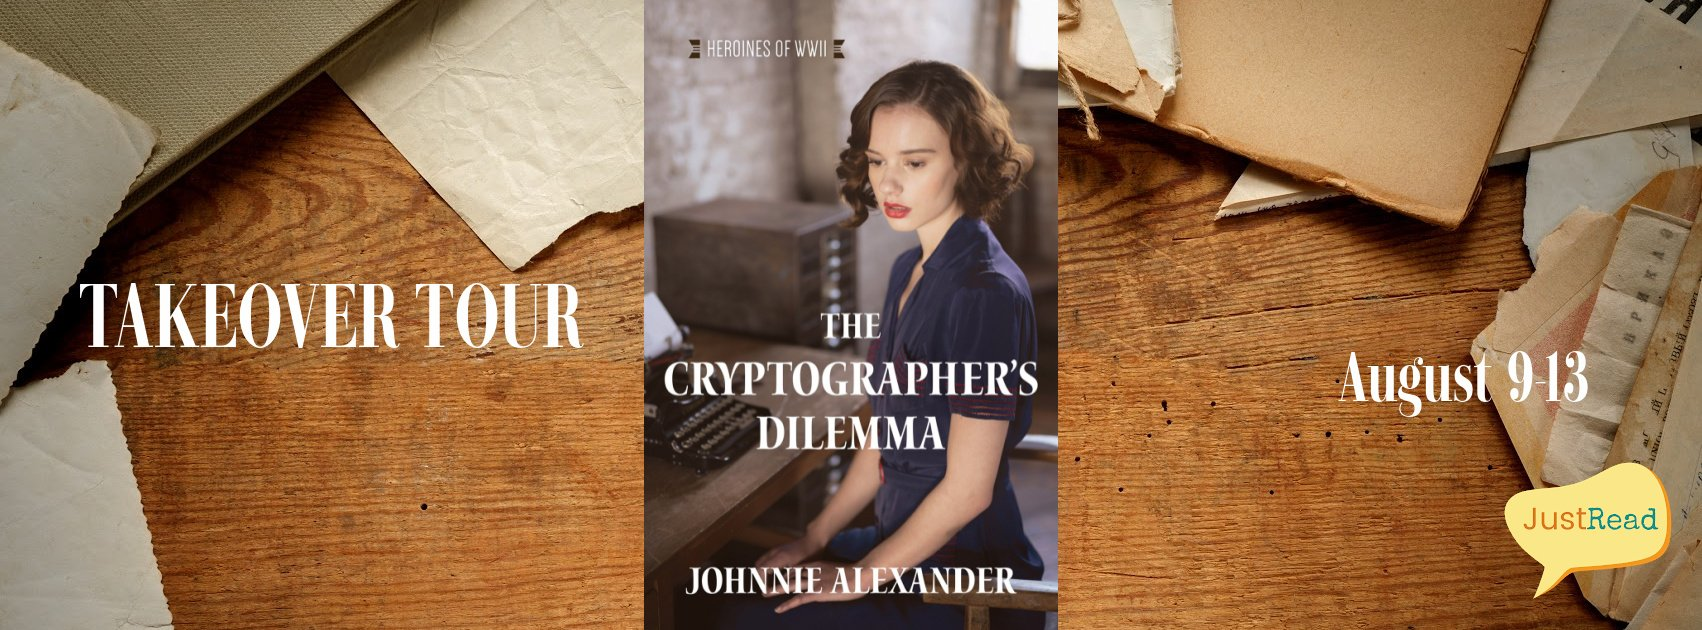 The Cryptographer's Dilemma JustRead Takeover Tour